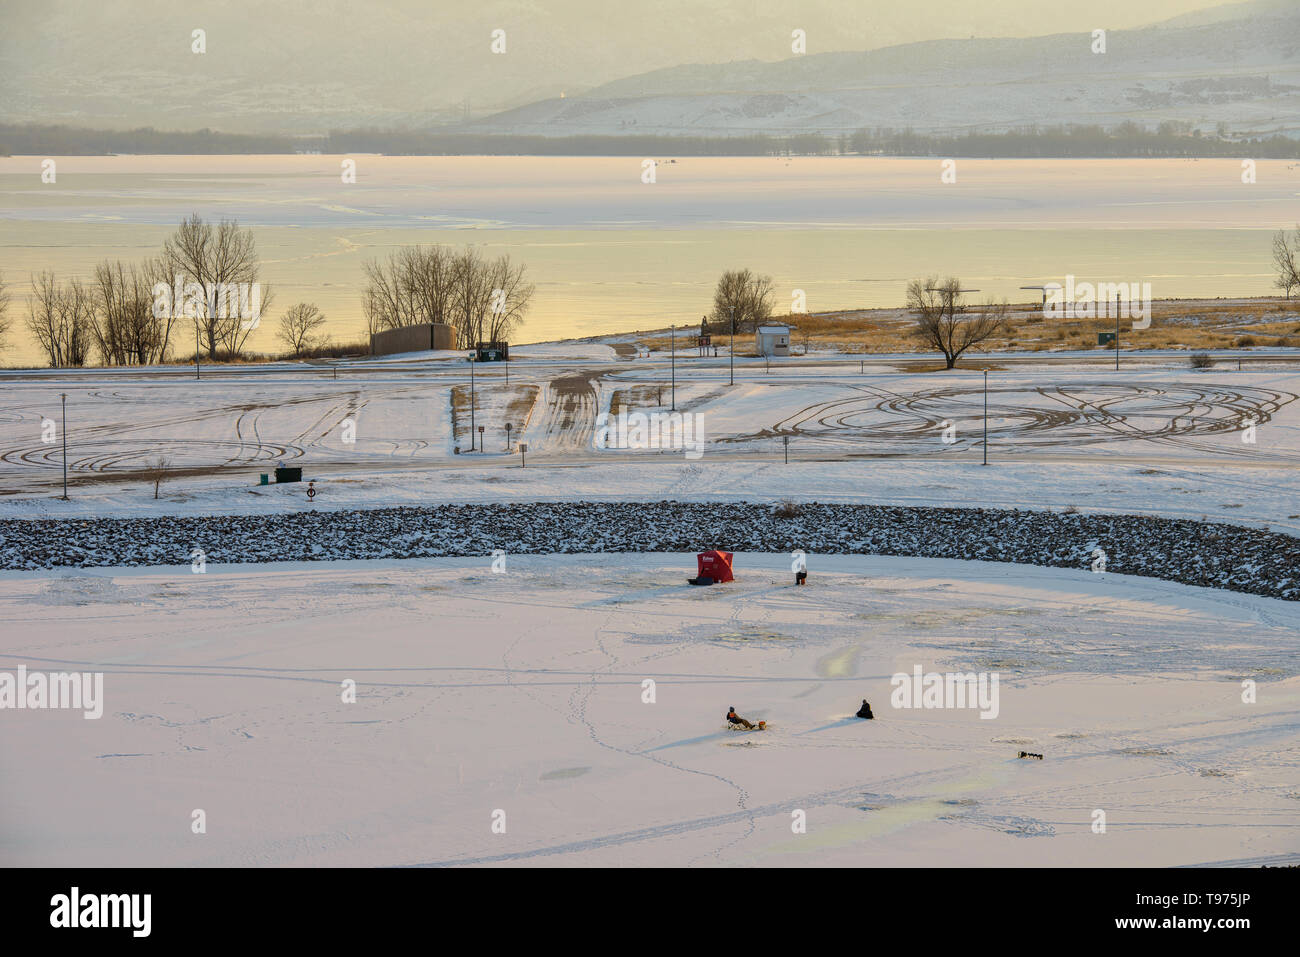 Winter Ice Fishing - On a very cold December evening, a few people are enjoying ice fishing on the frozen lake at Chatfield State Park, Colorado, USA. Stock Photo